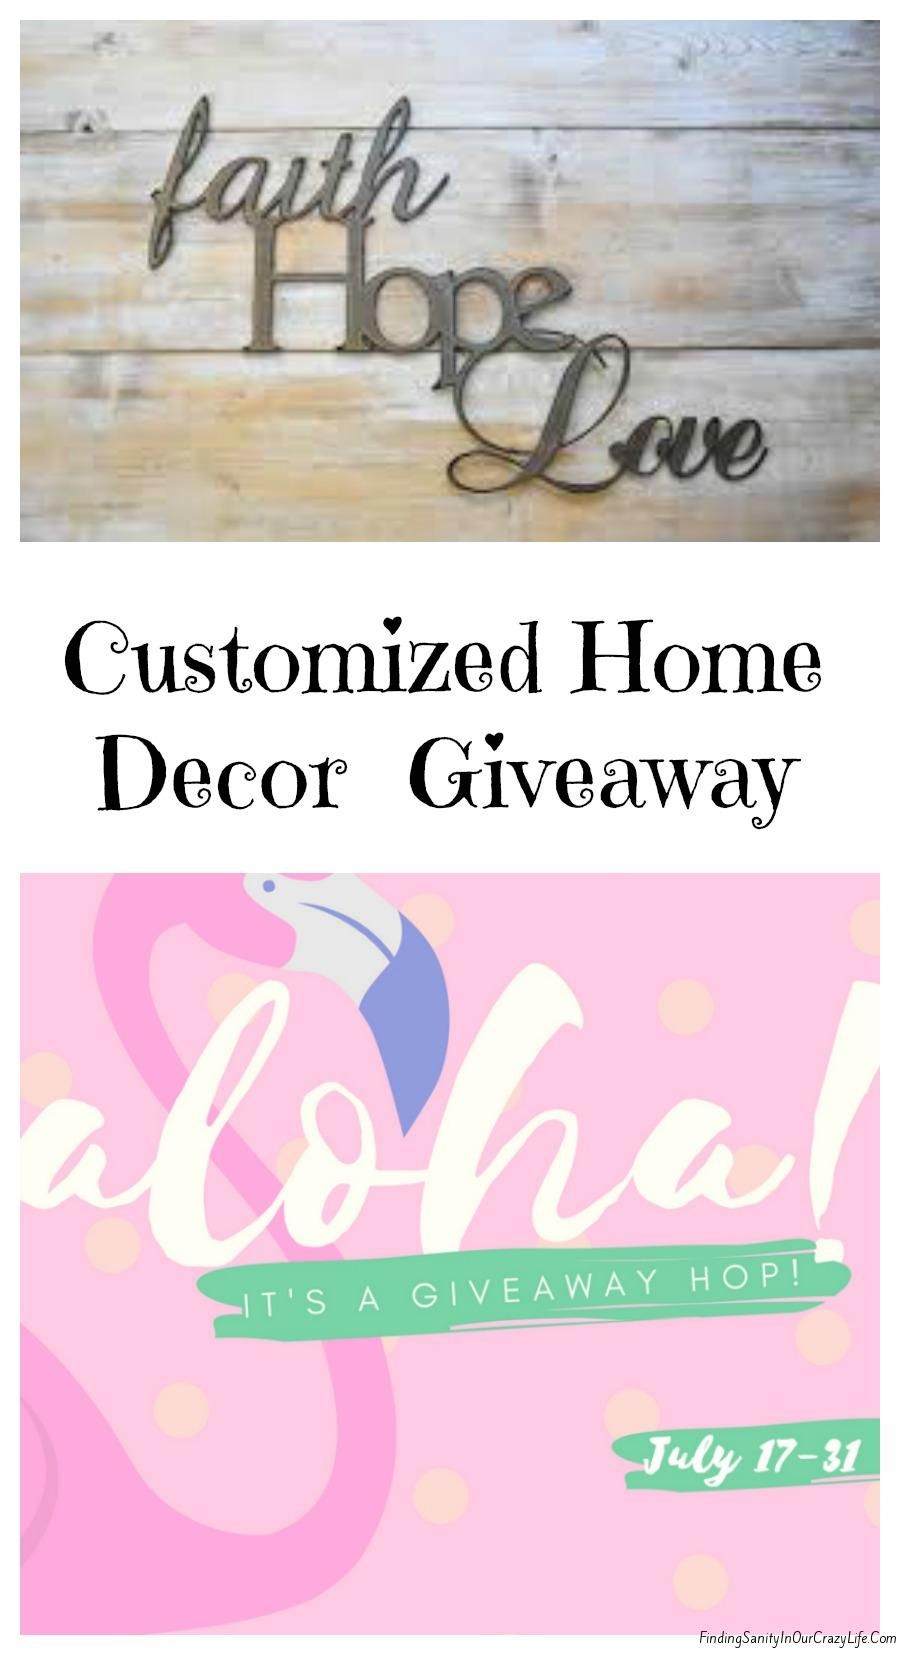 Home Decor Giveaway holiday gift guide home decor hostess gifts Customized Aluminum Home Decor Signs Giveaway